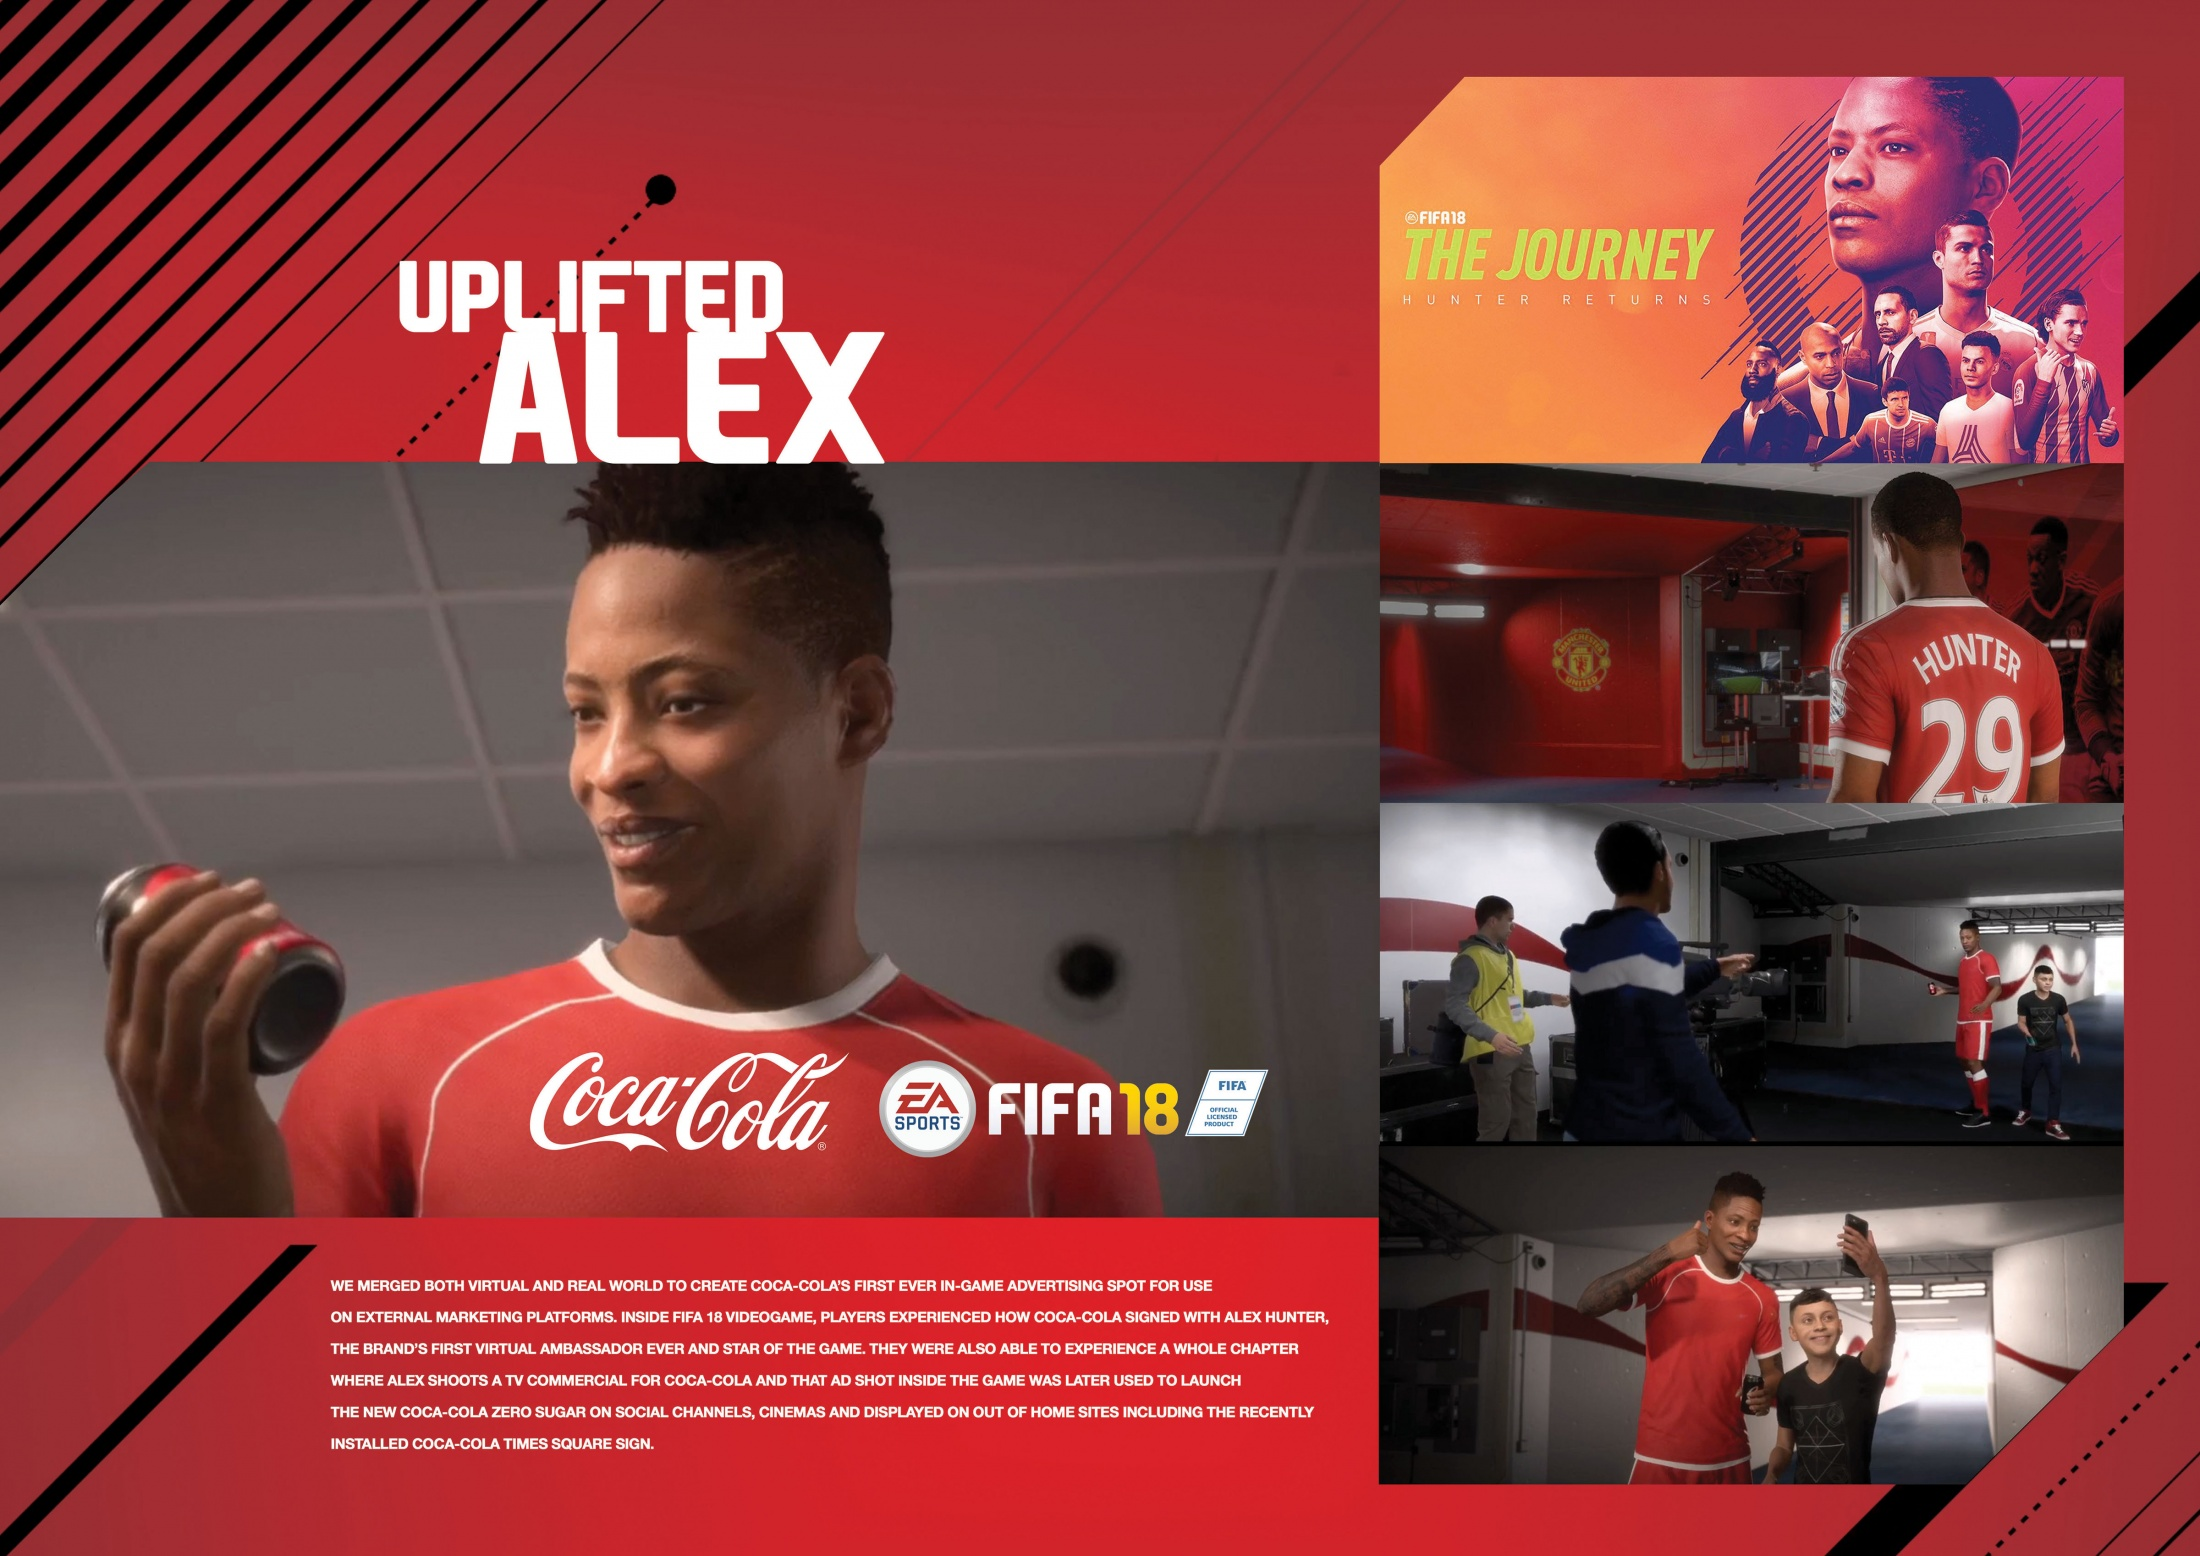 Thumbnail for Uplifted Alex